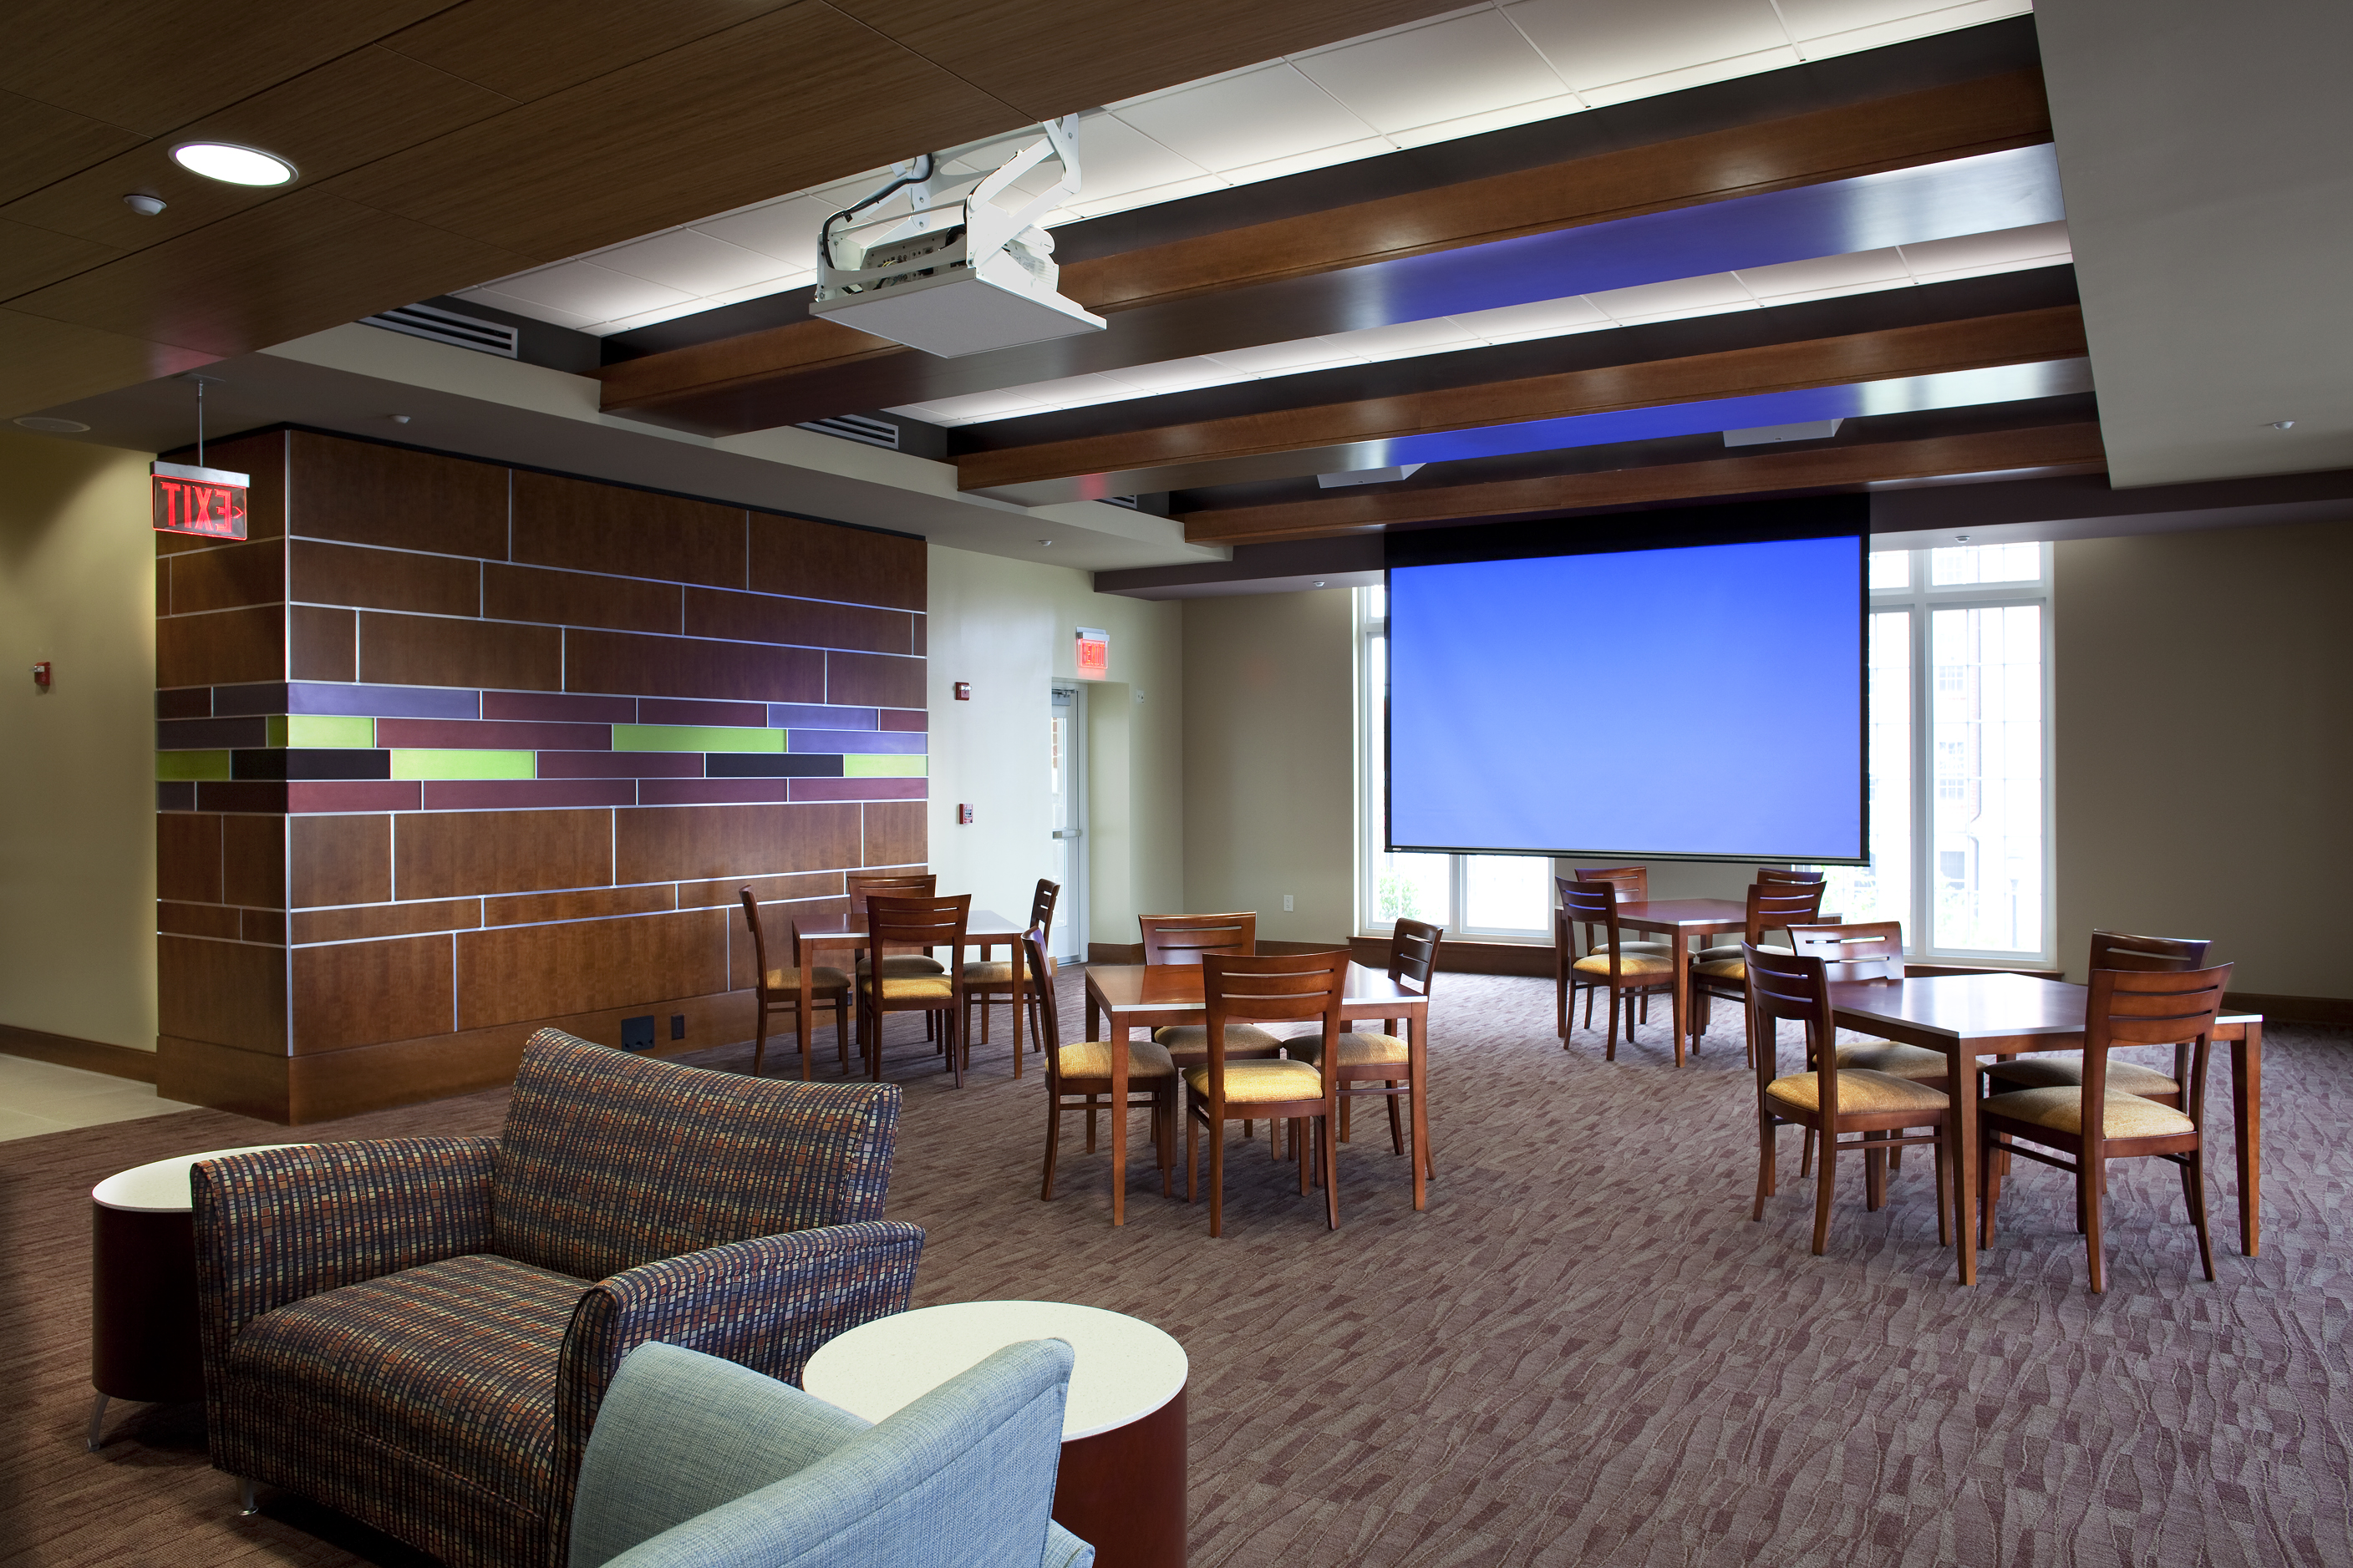 Residence hall 1516 university architects for Hall room interior designs